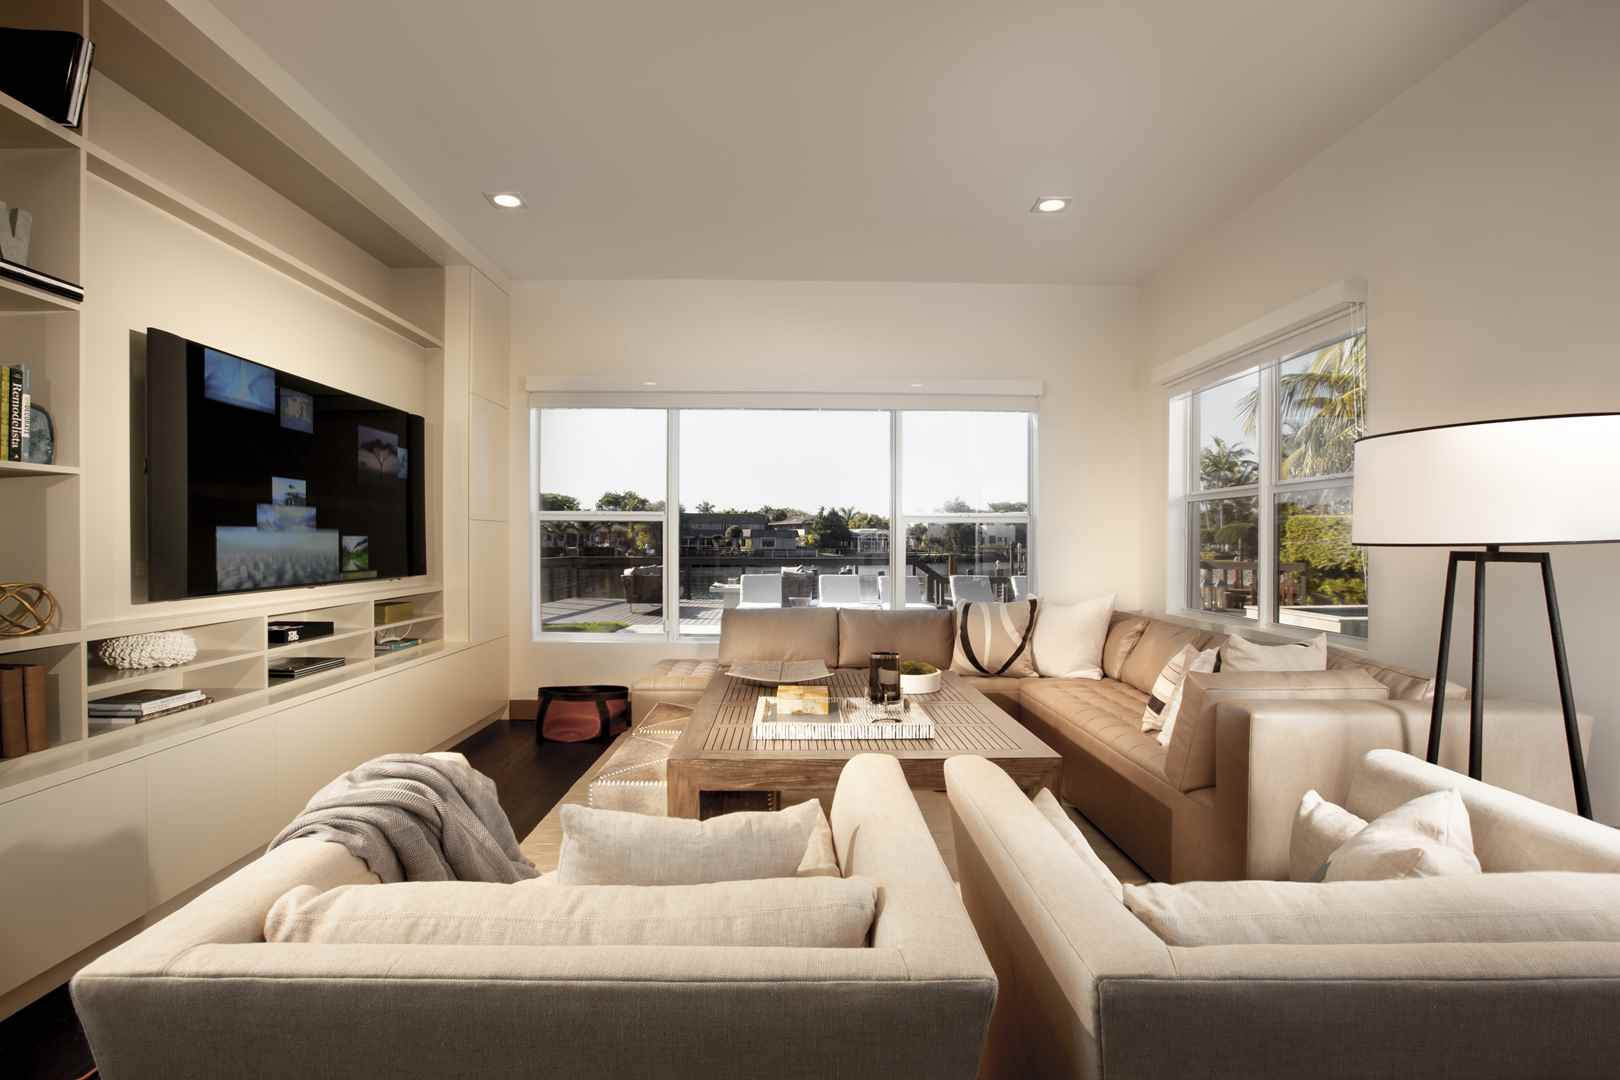 Home renovation contemporary comfort by dkor interiors - What is contemporary design ...